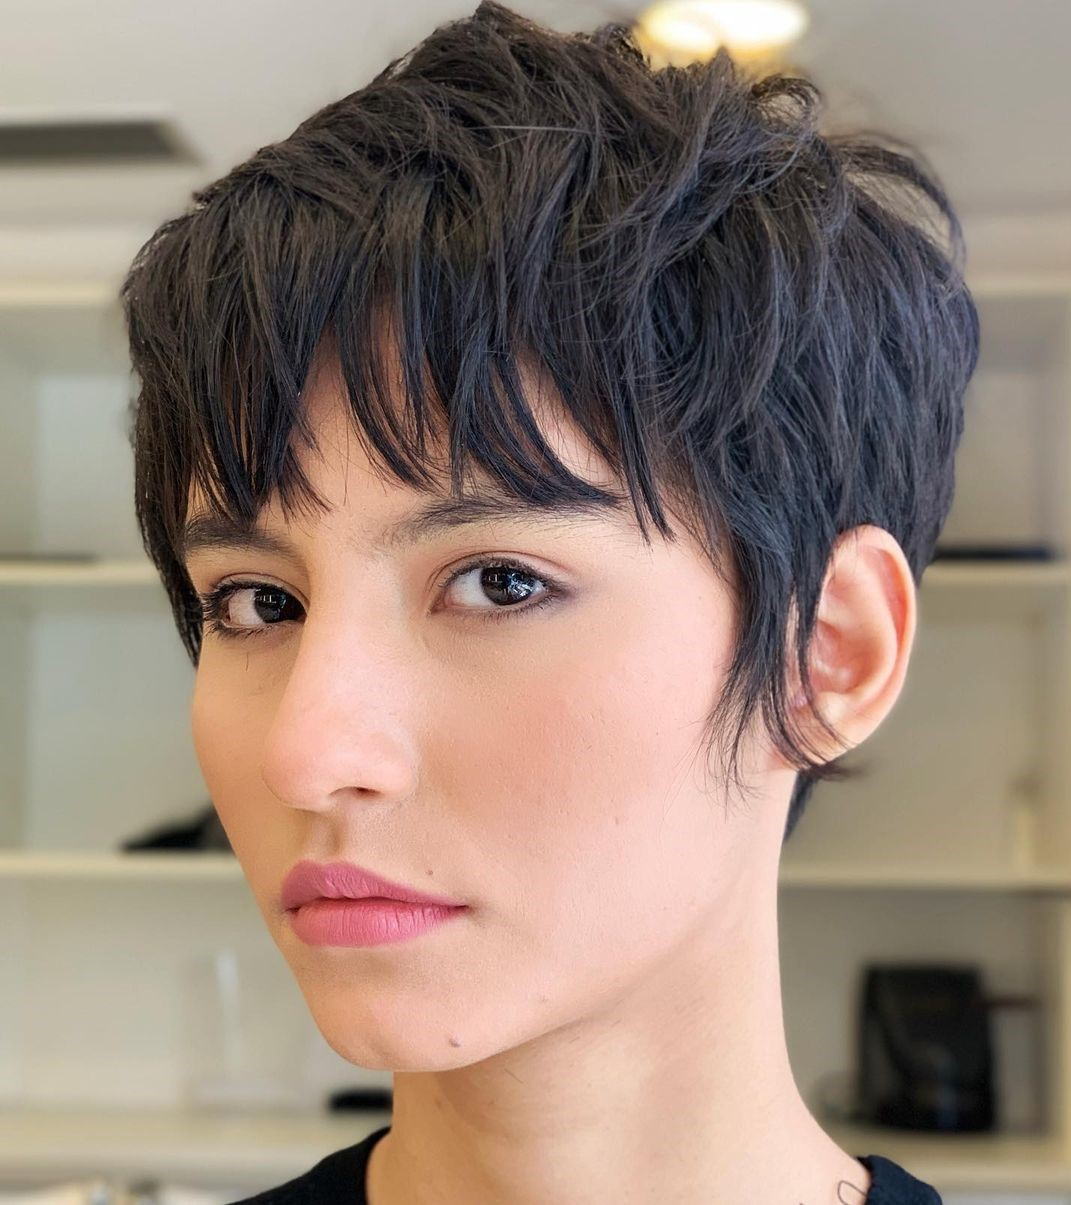 Short Sliced Pixie with Bangs